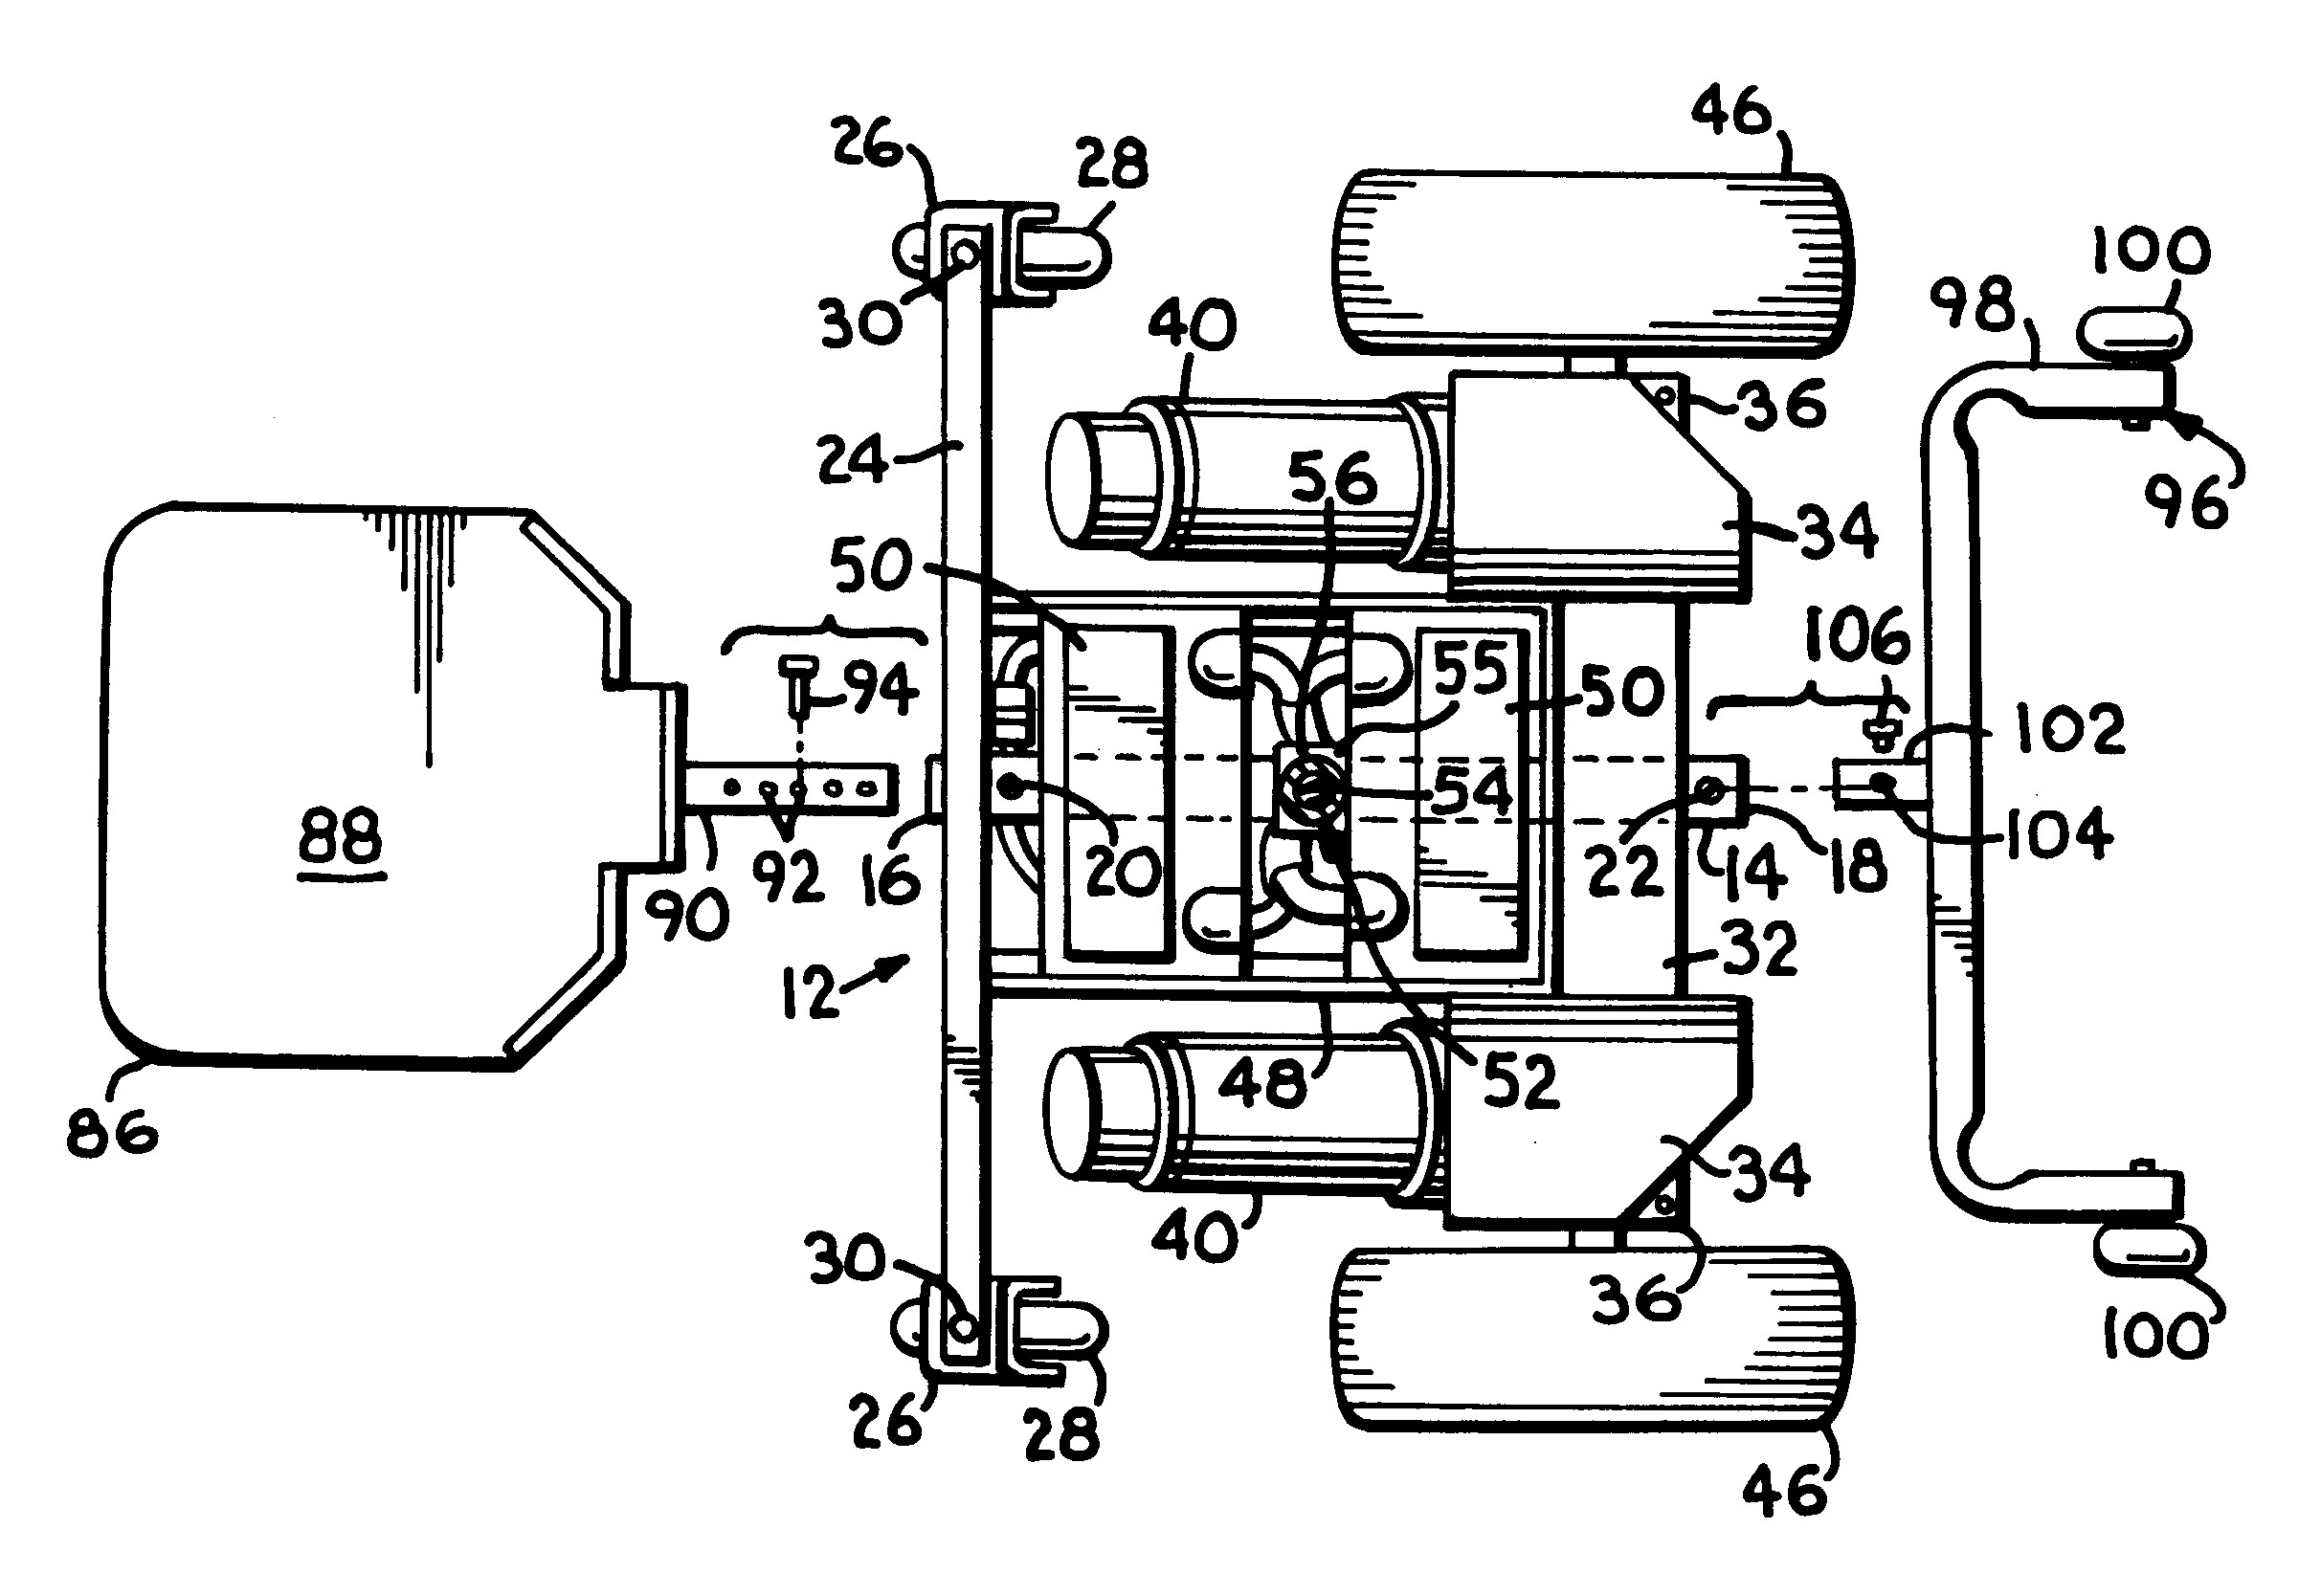 Pride Lift Chair Replacement Parts Pride Jazzy Power Chair Wiring Diagram likewise Parts Pride Mobility